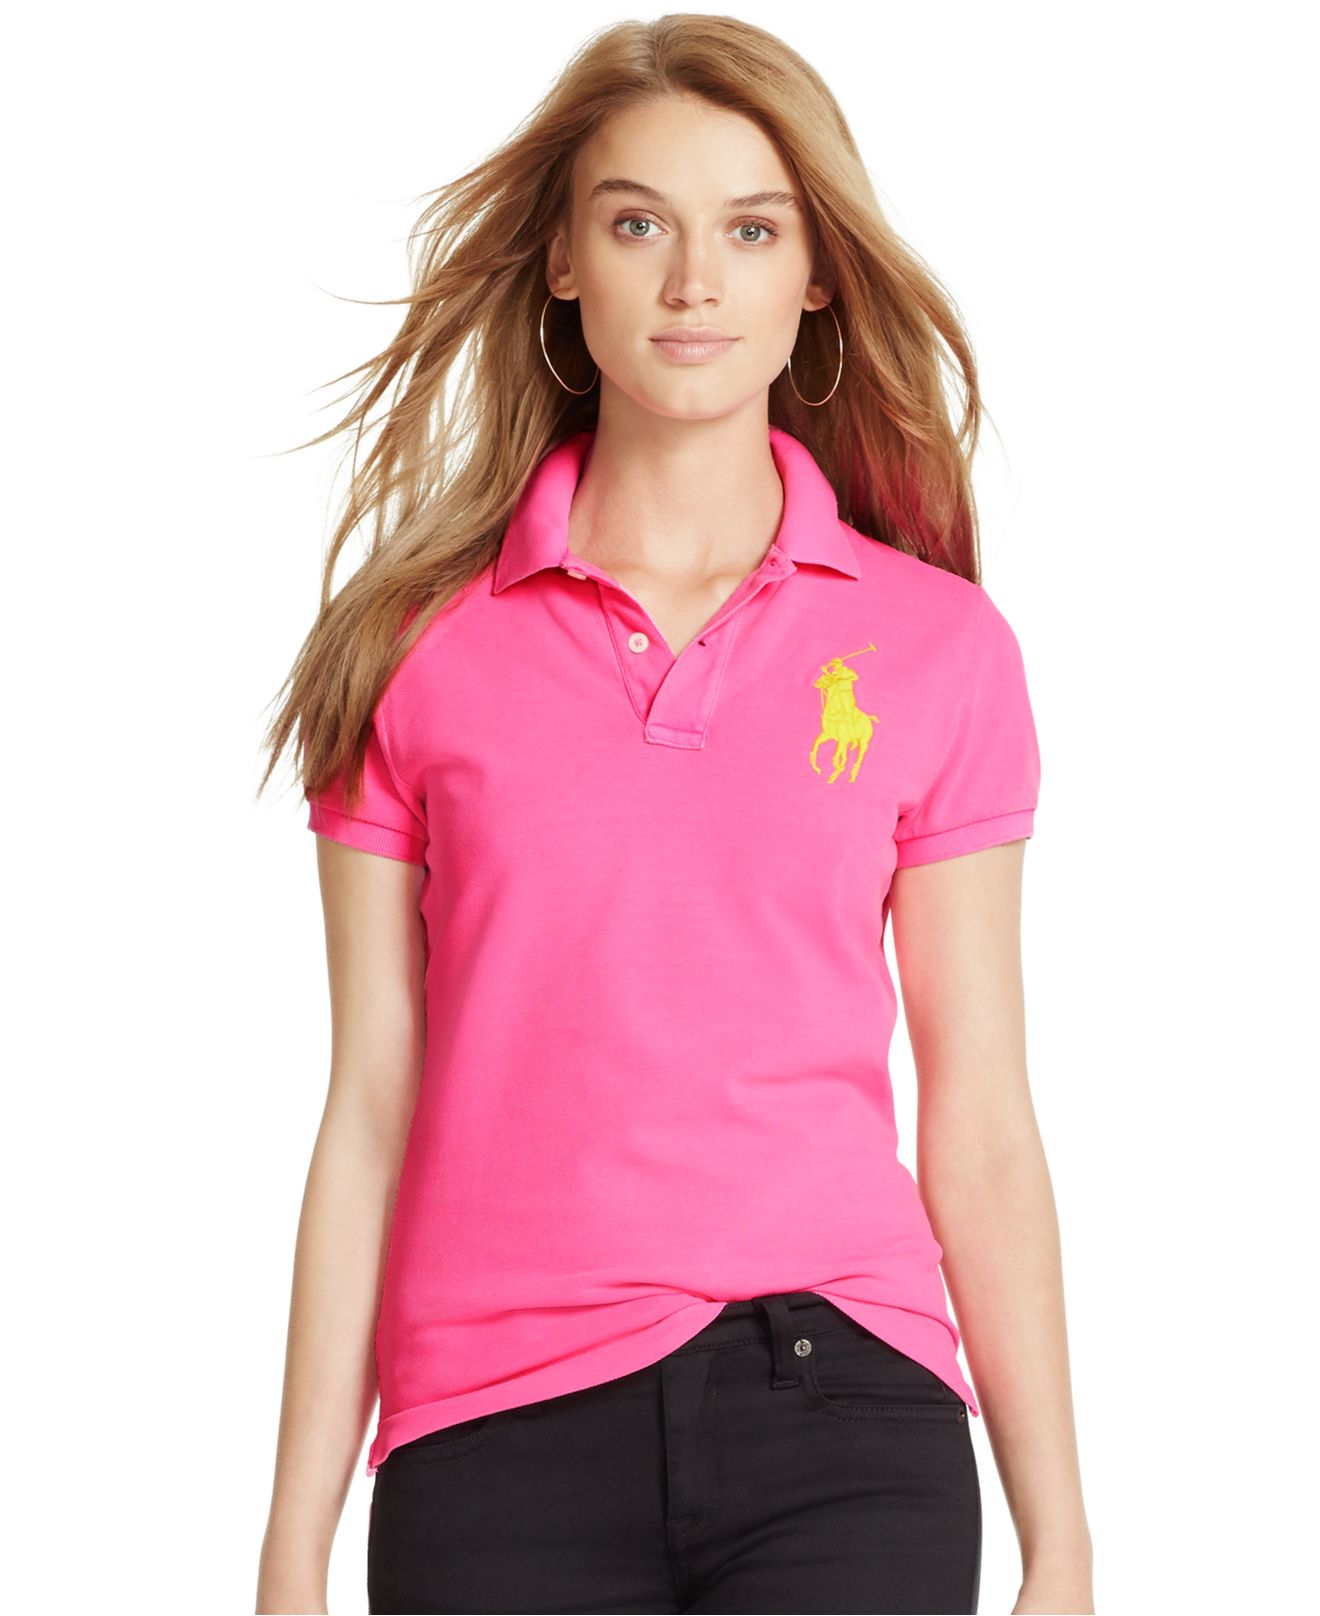 Lyst - Polo Ralph Lauren Skinny-fit Big Pony Polo Shirt in Pink 64cdaac060fb